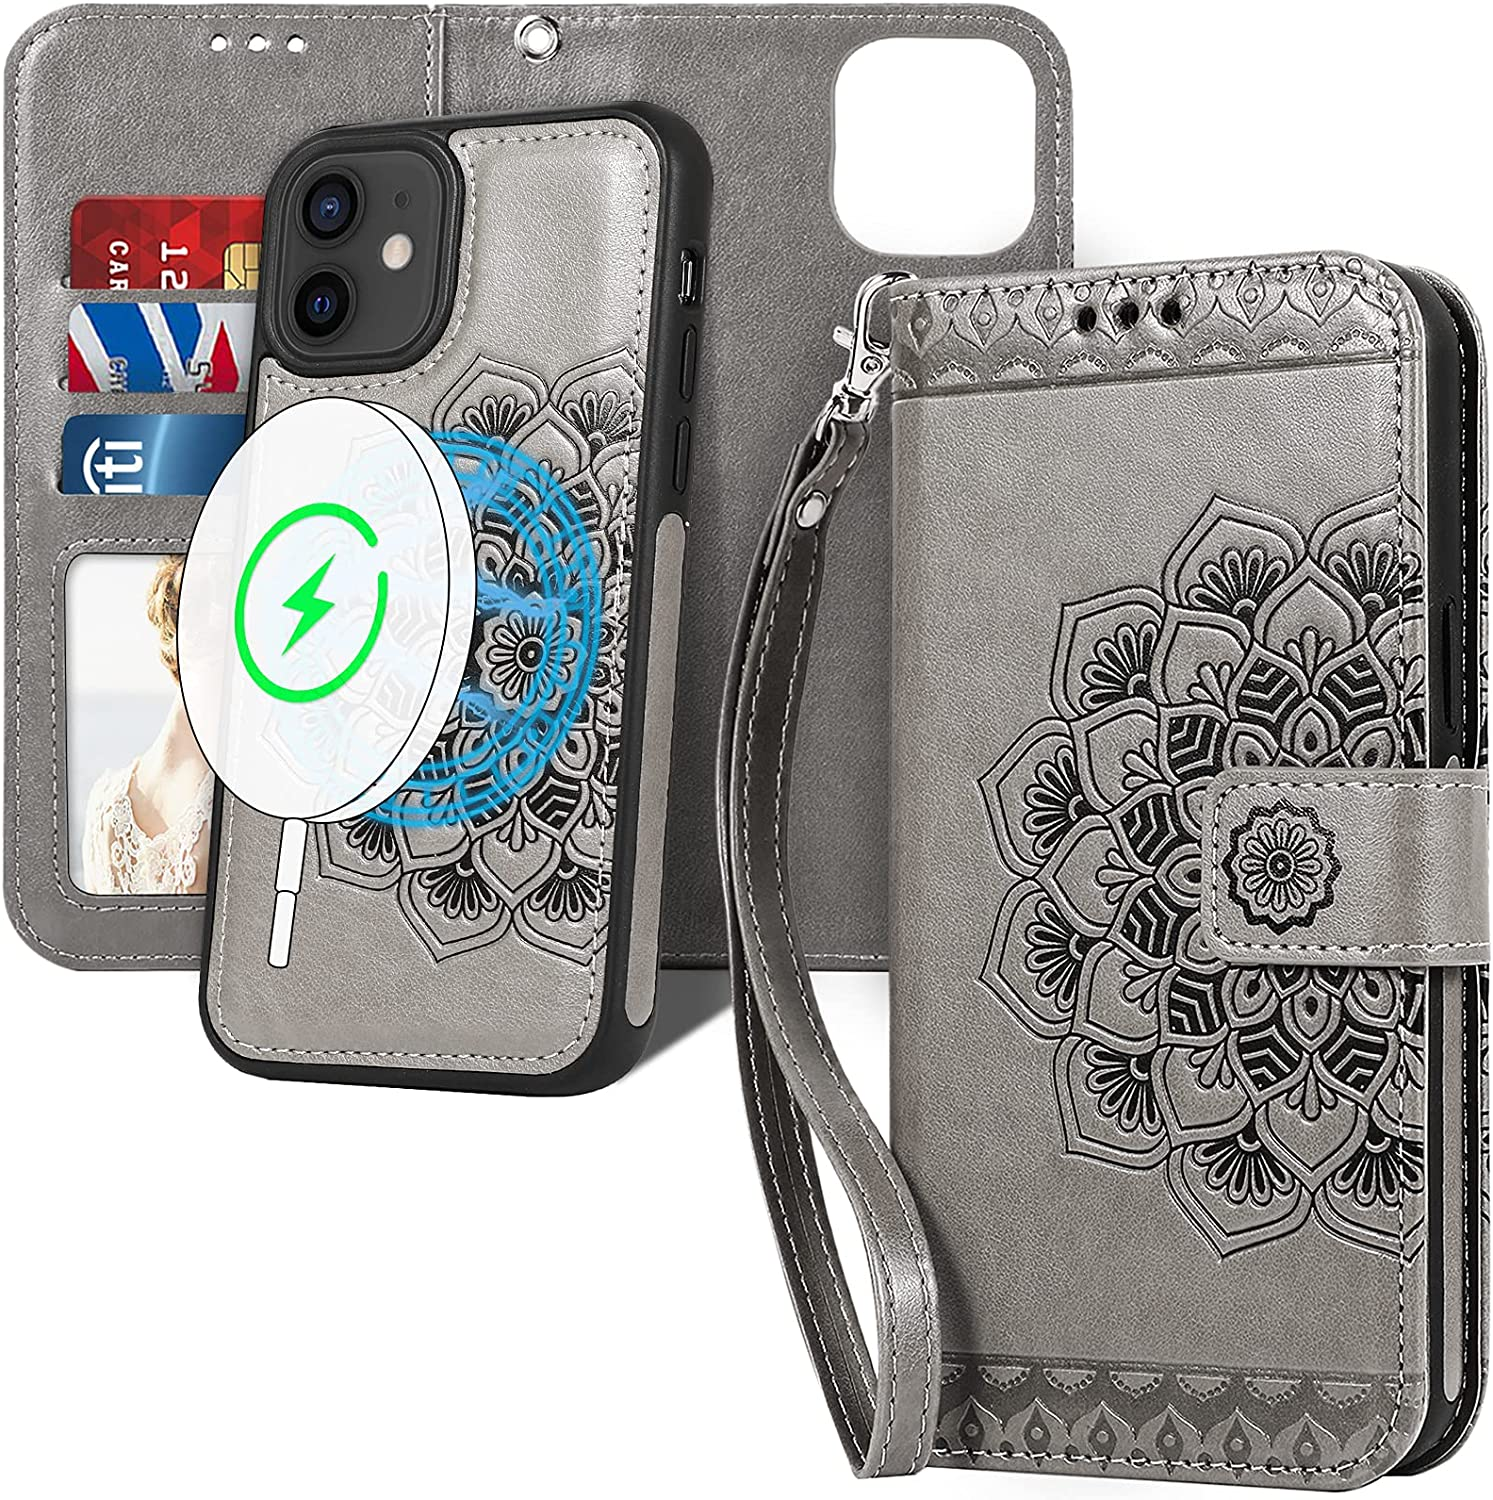 CASEOWL Compatible for iPhone 12/12 Pro Wallet Case, Magnetic Detachable [Support Magsafe Charger] with RFID Blocking Card Holder, Strap, Embossed Mandala Flower Floral Leather Wallet Phone Case,Gray